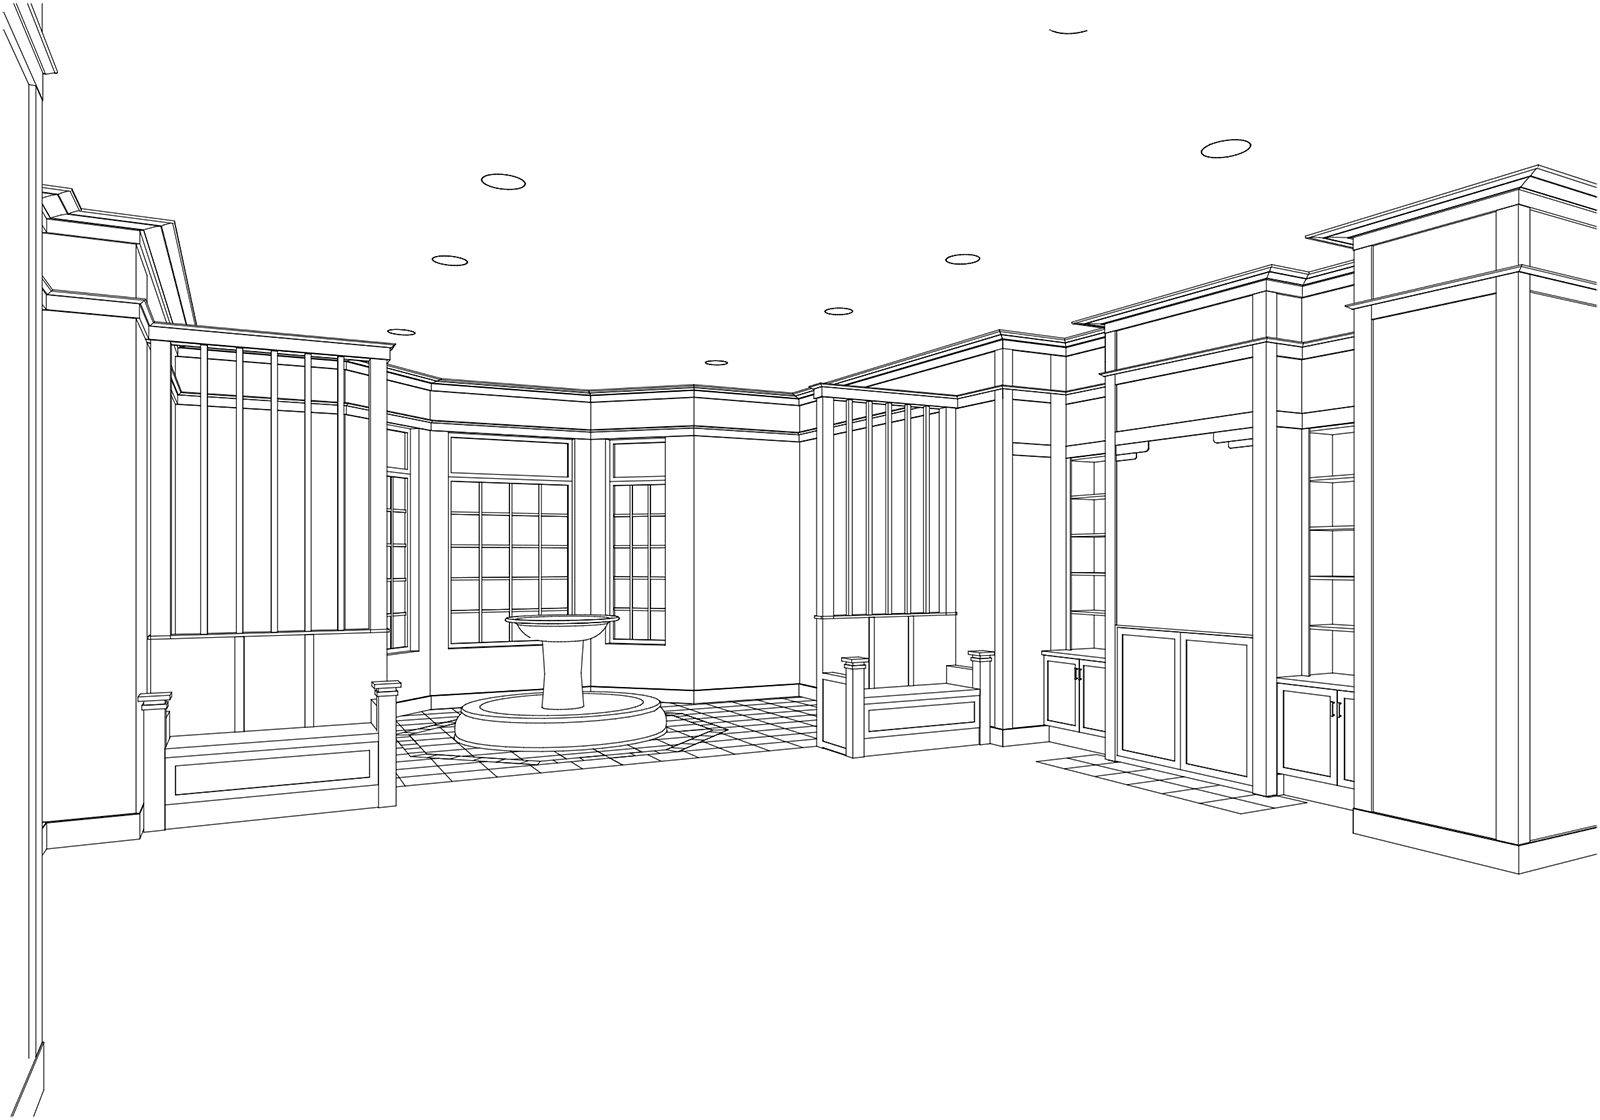 3D model of main lobby   (courtesy of Kenneth E. Hurd & Associates)